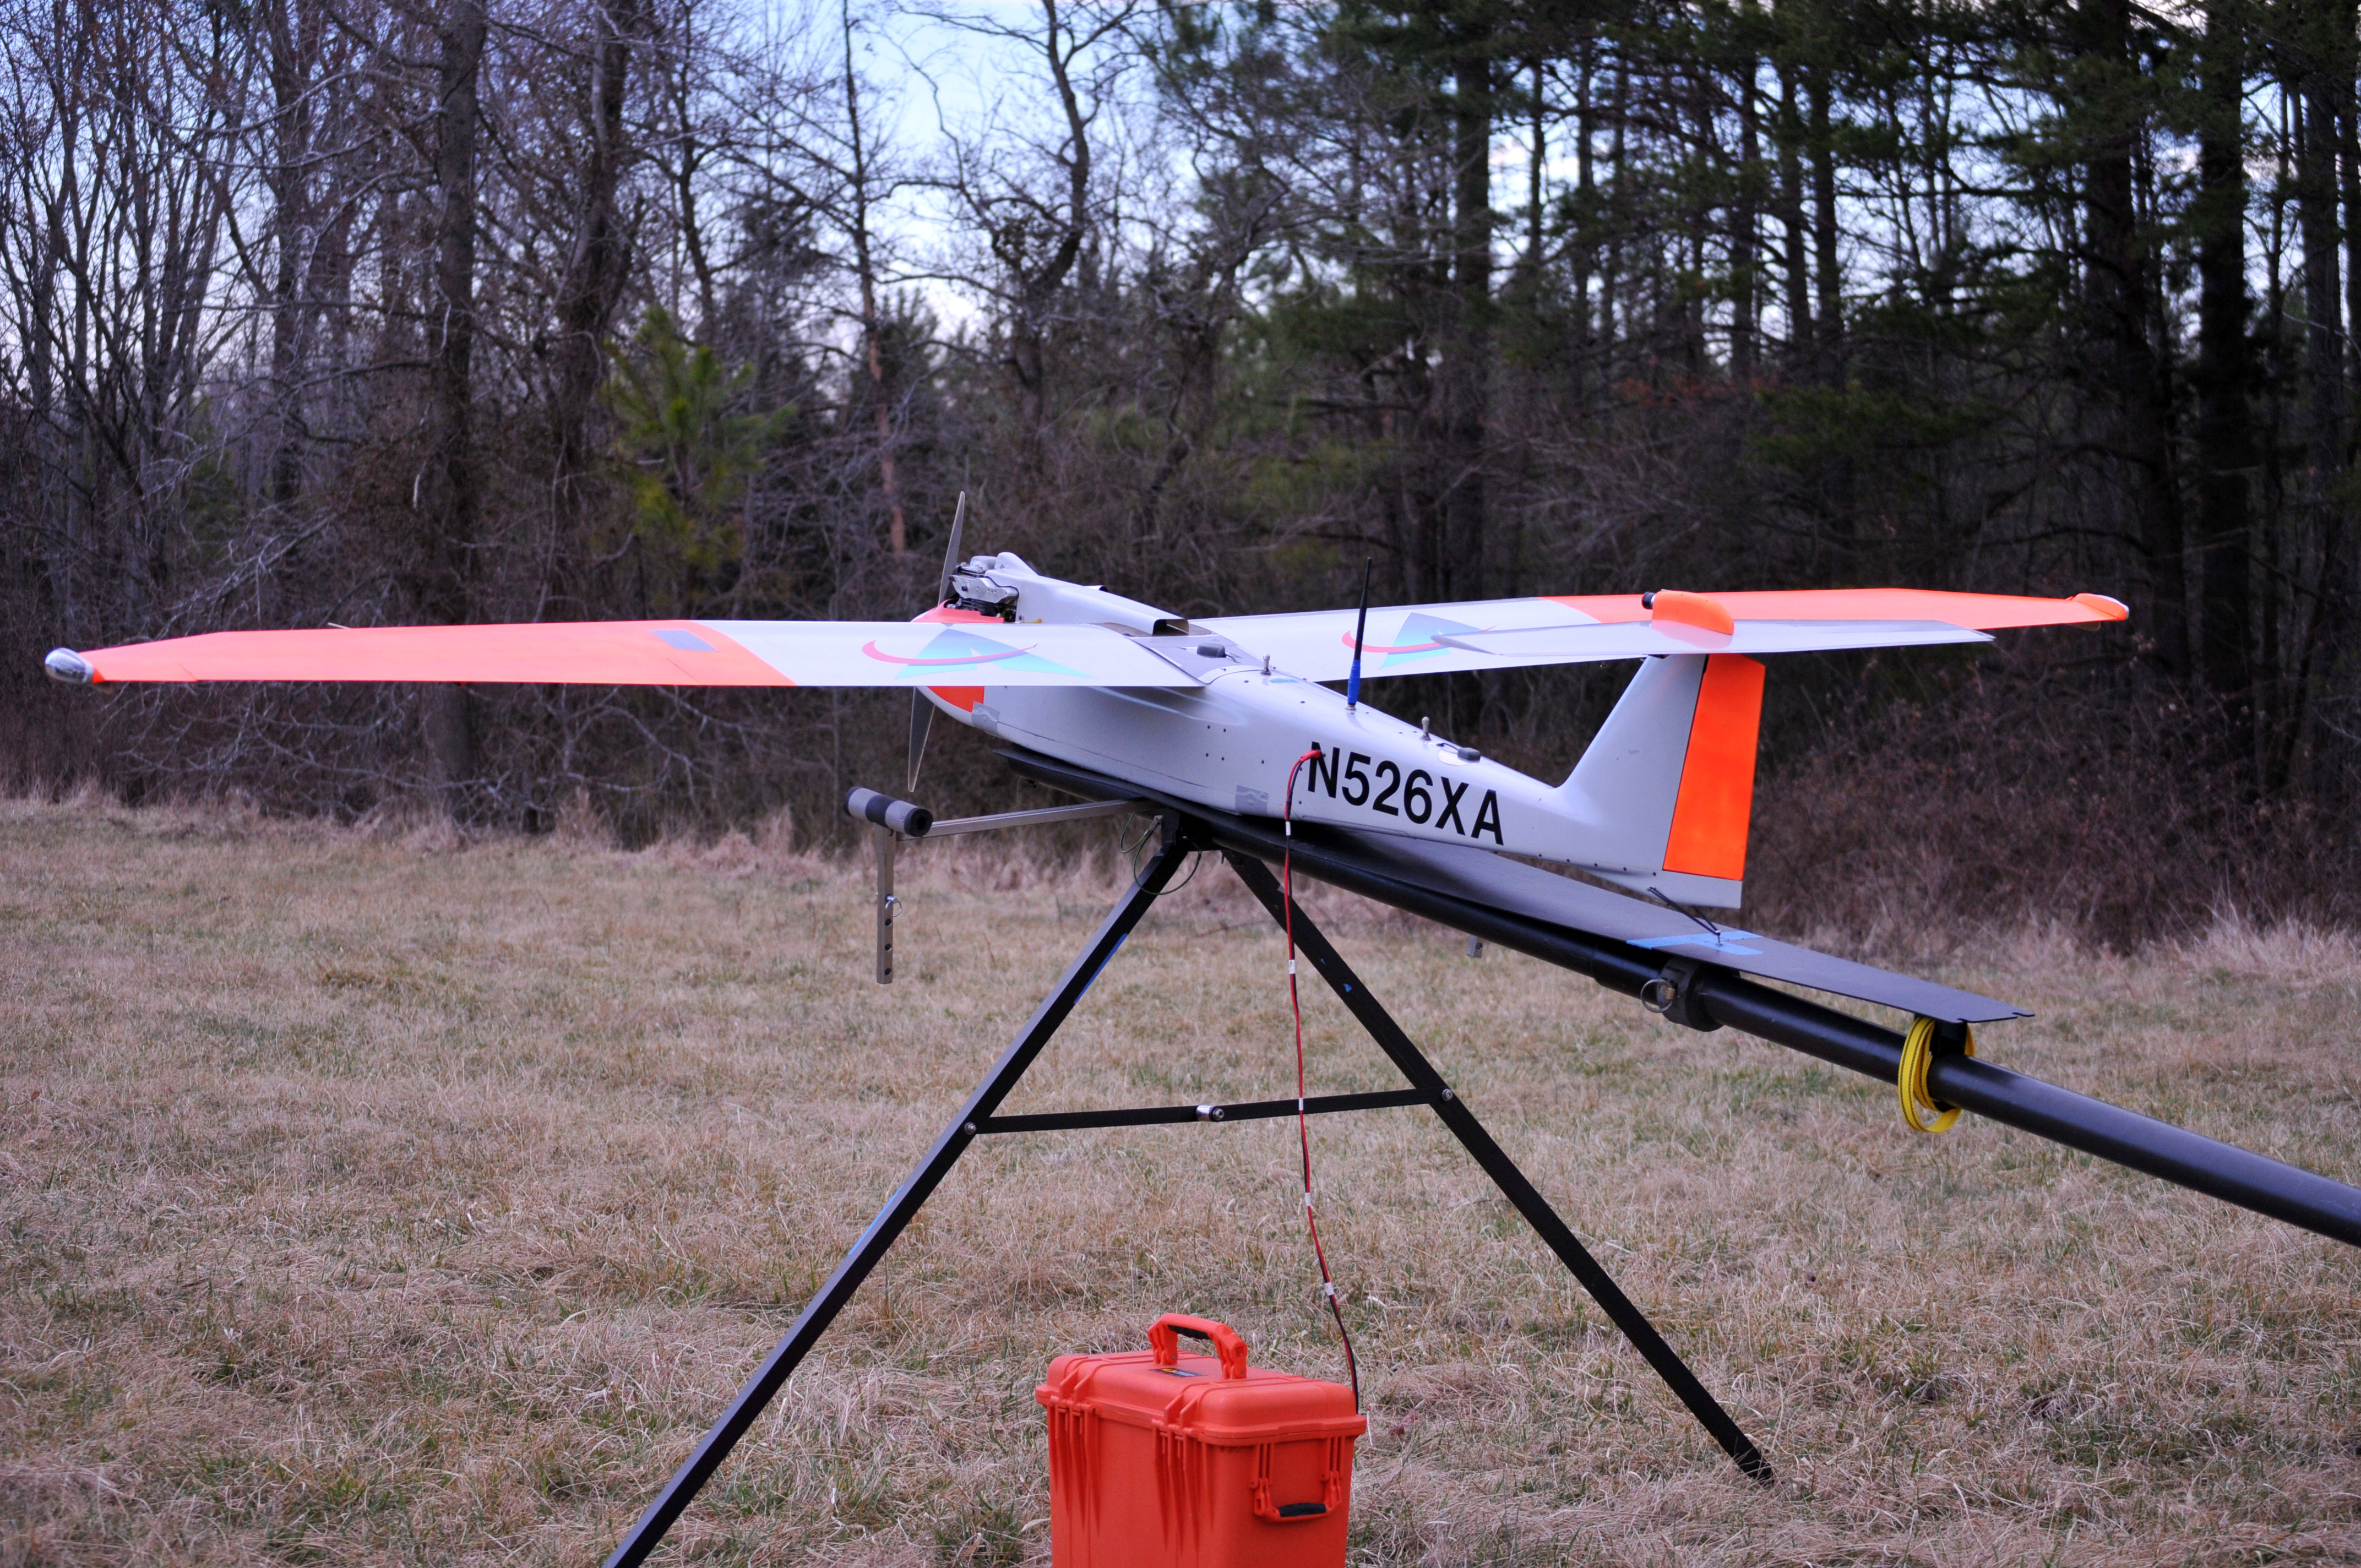 Unmanned aerial vehicle or drone on launch pad